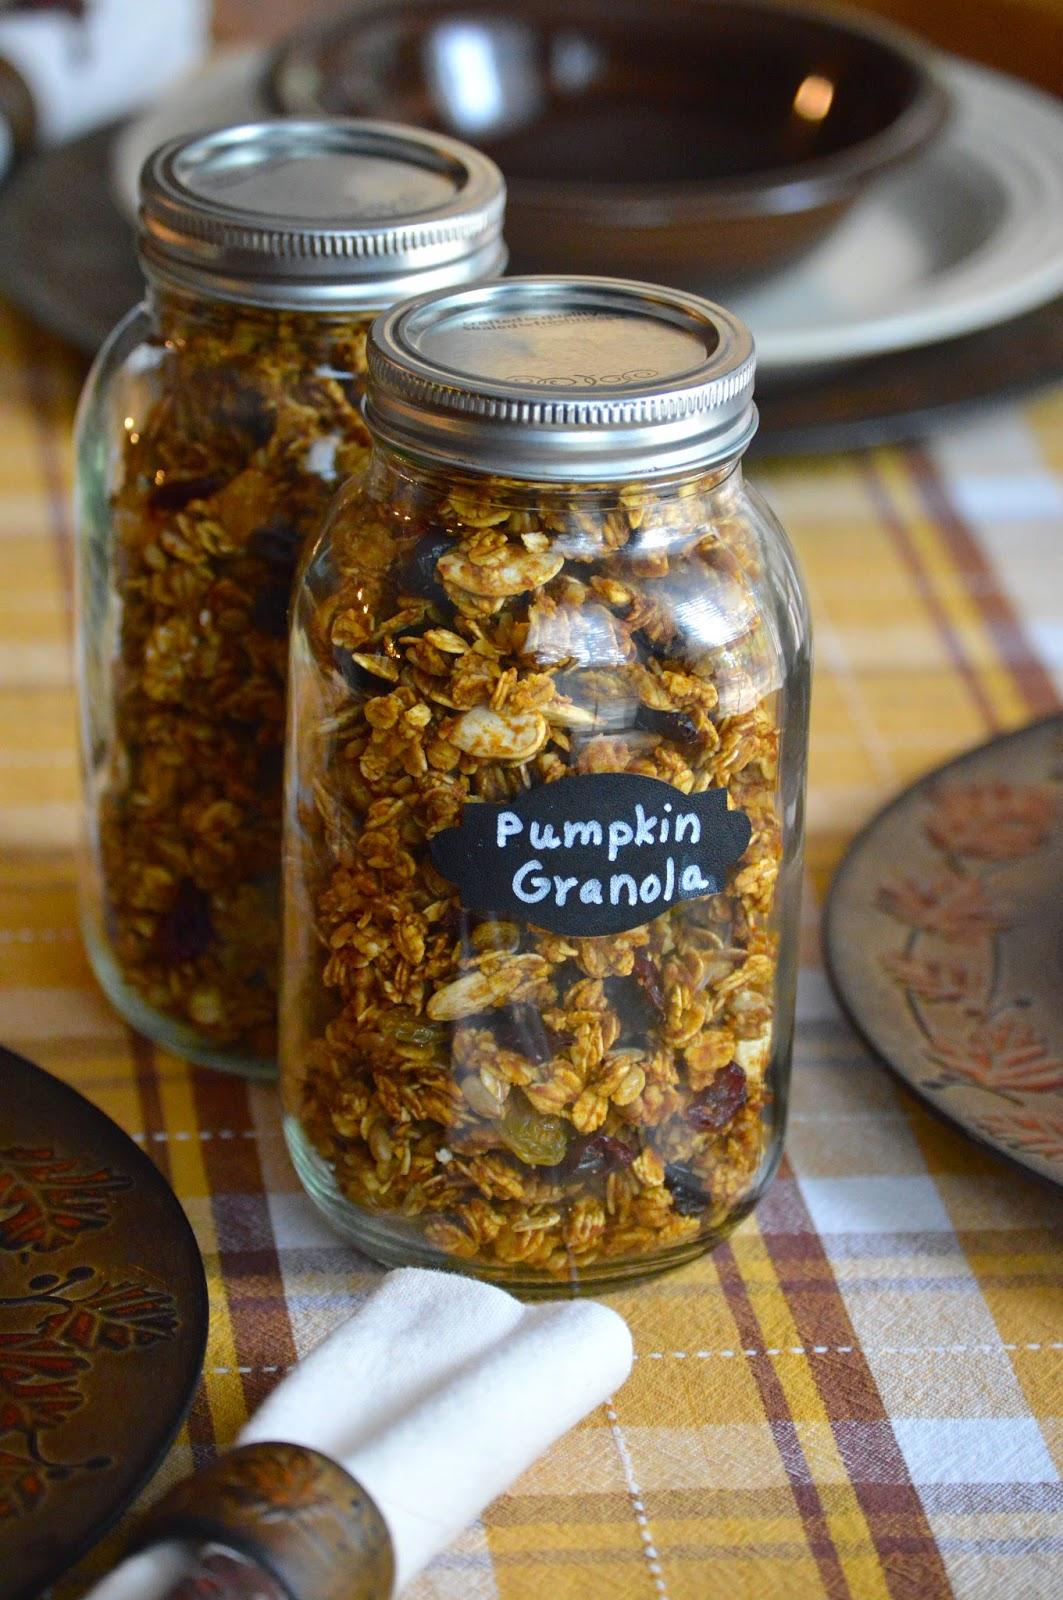 Pumpkin Granola from Heritage Schoolhouse -- Featured Post from the From the Farm Blog Hop via Once Upon a Time in a Bed of WIldflowers